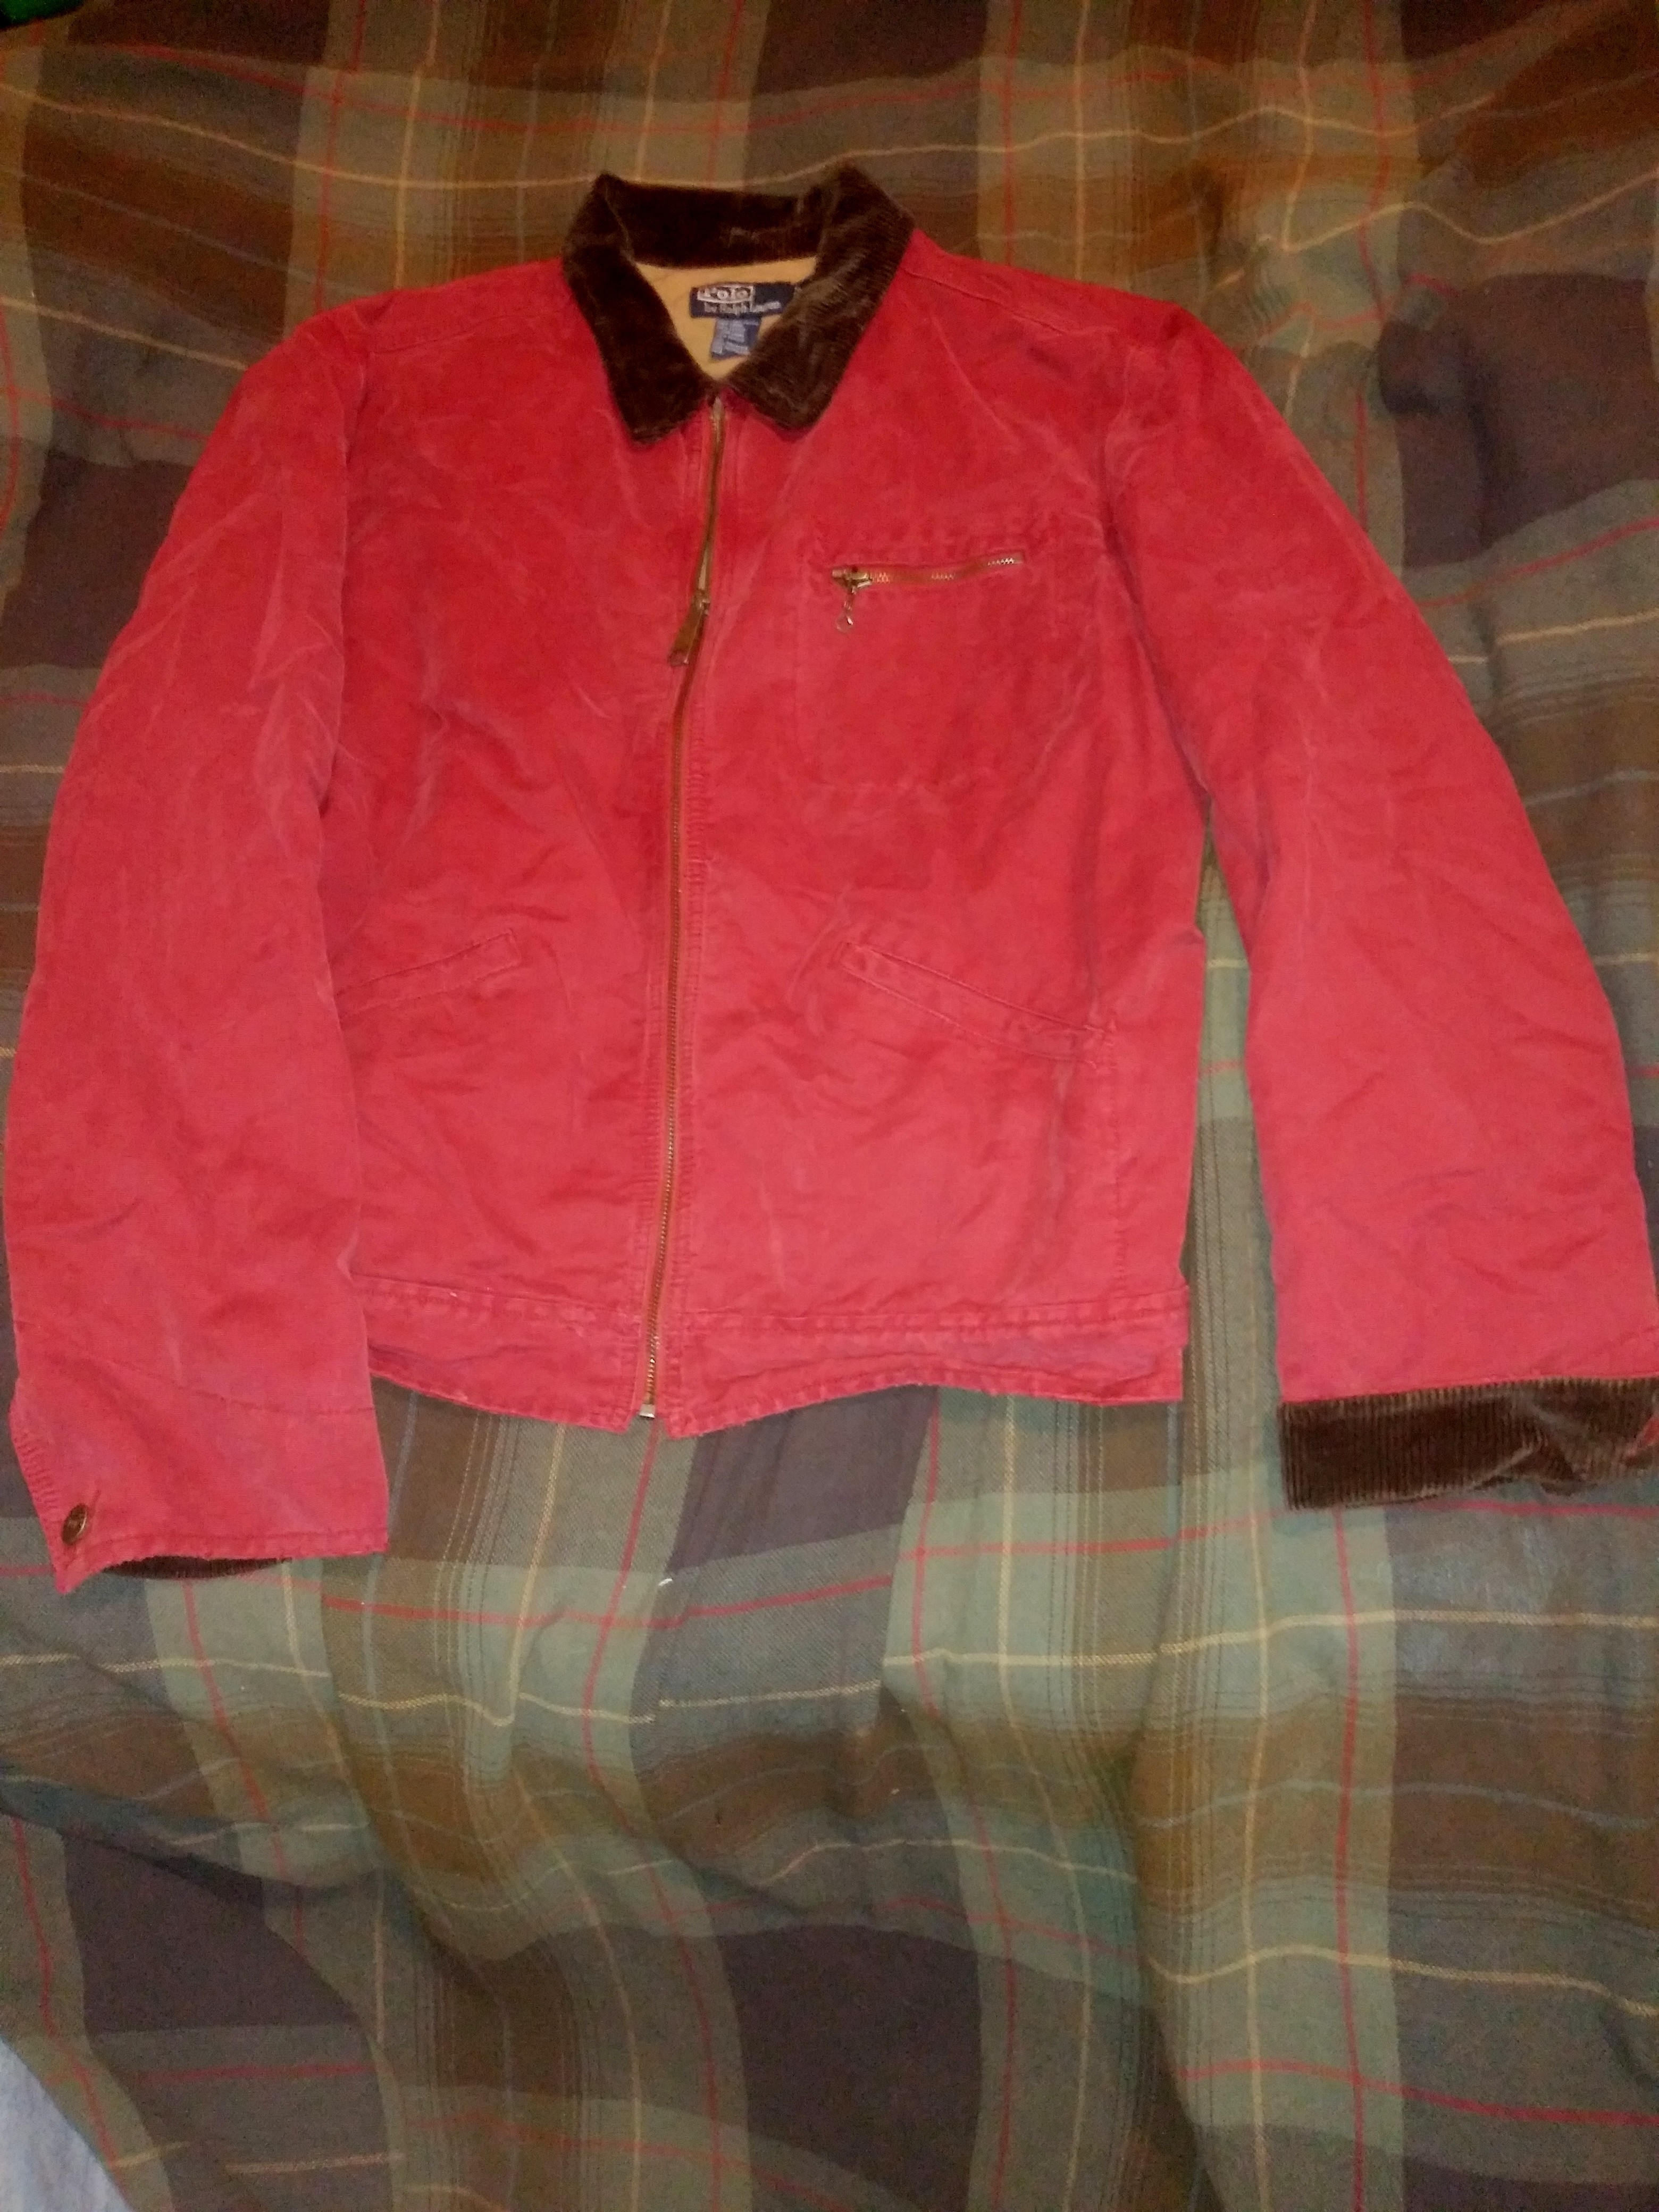 Offers Collar Nowsorry It Drop Size Corduroy Large Lauren Jacket Buy Deletionrare Last Polo Antique Red Ralph With No Before sQrhtdC